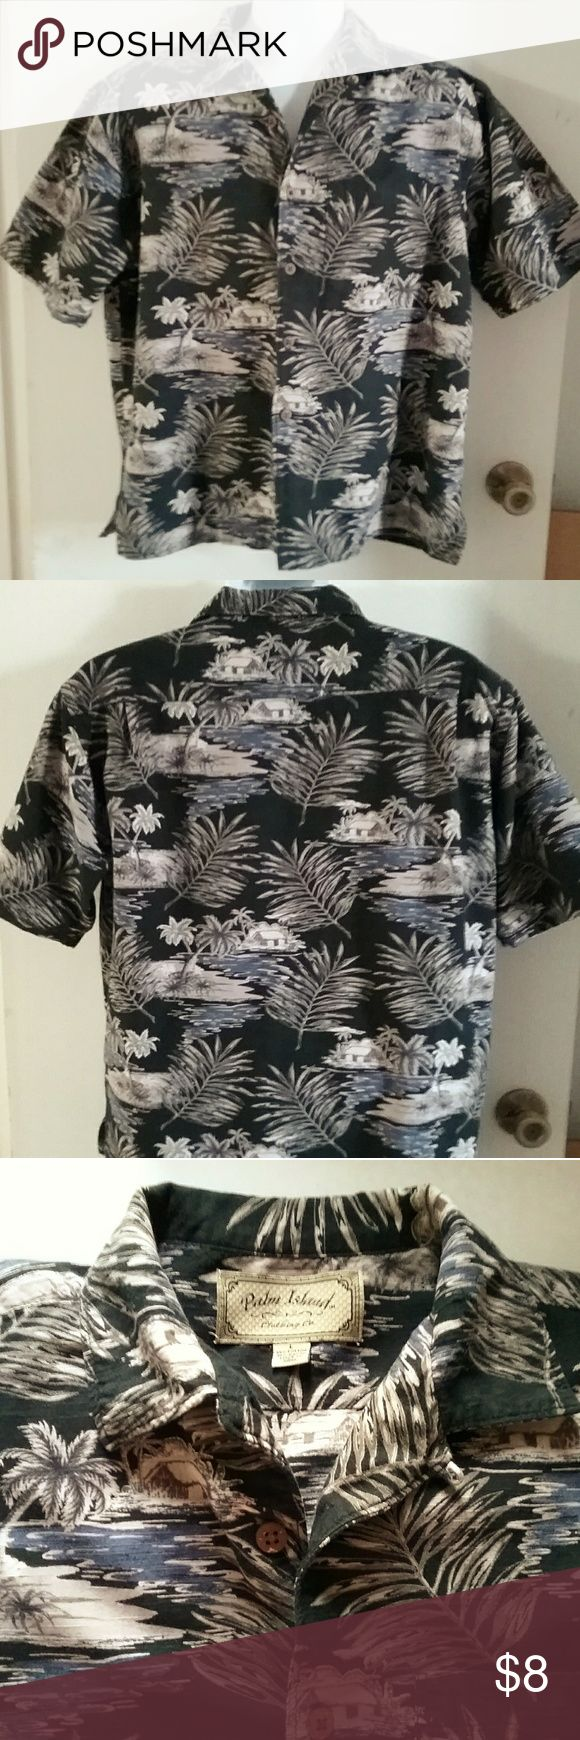 """PALM ISLAND CLOTHING CO Mens Hawaiian Print Shirt Pre-owned mens Hawaiian print shirt🌴good clean condition 🌴size L 🌴21"""" shoulder to shoulder 🌴26"""" shoulder to hem 🌴24"""" underarm to underarm in front 🌴cotton blend🌴black/brown/white/blue Palm Island Clothing Co Shirts Casual Button Down Shirts"""